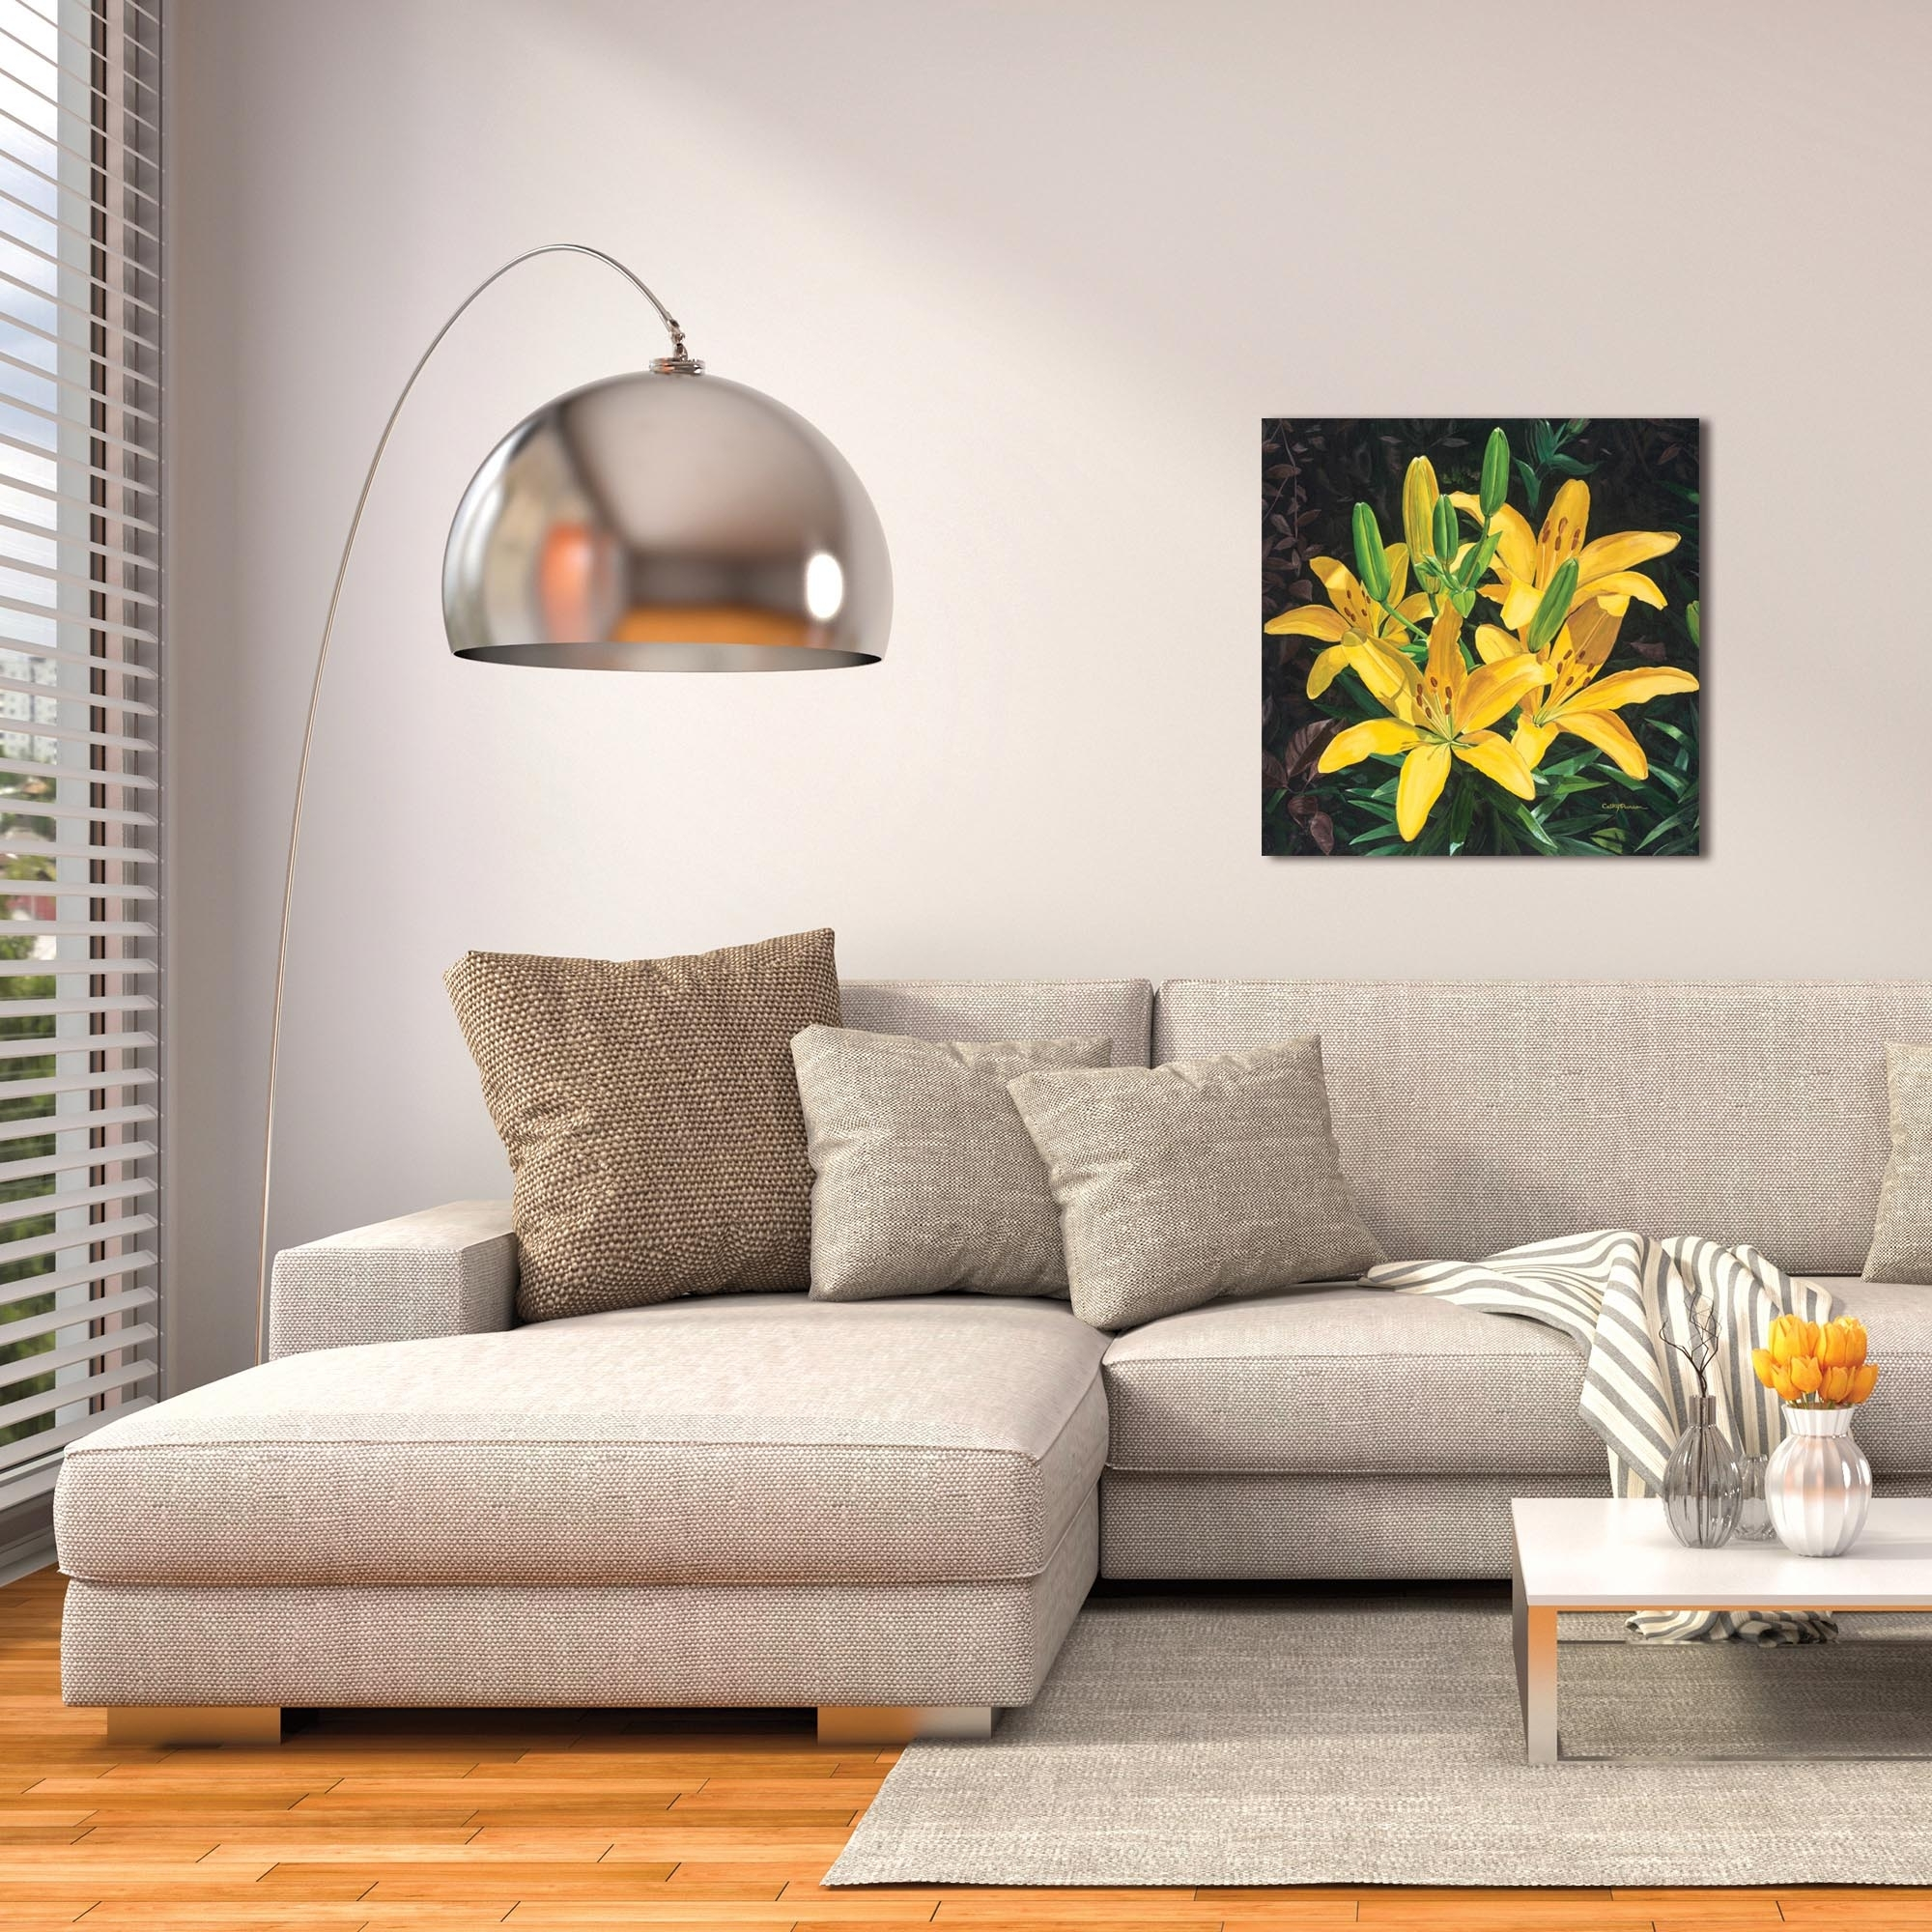 Metal Art Studio – Yellow Liliescathy Pearson – Traditional Wall In Newest Traditional Wall Art (View 11 of 15)